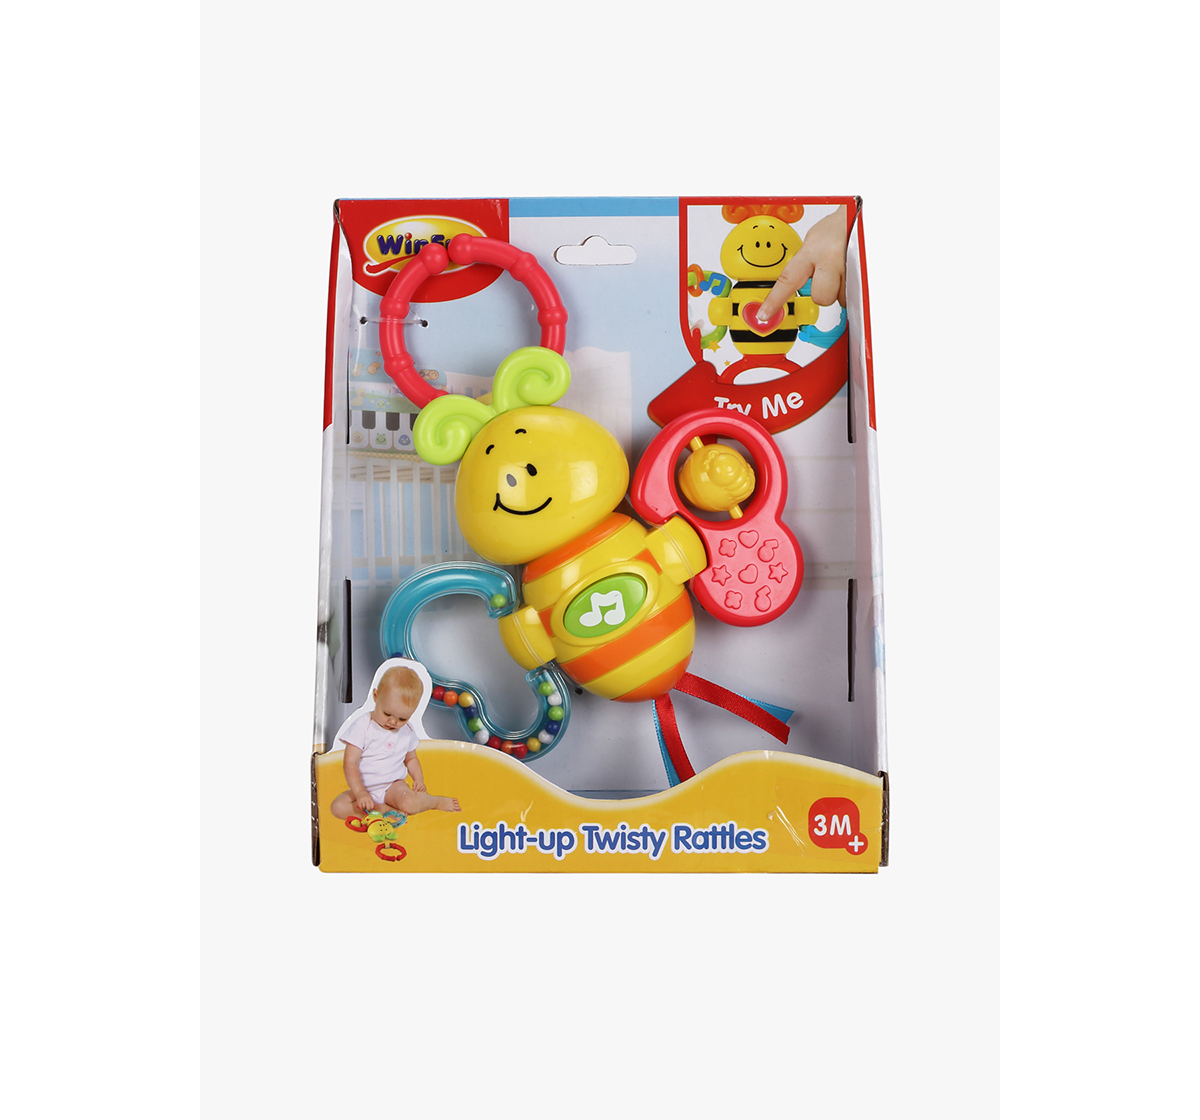 WinFun | Winfun Light Up Twisty Rattle - Butterfly New Born for Kids age 3M+